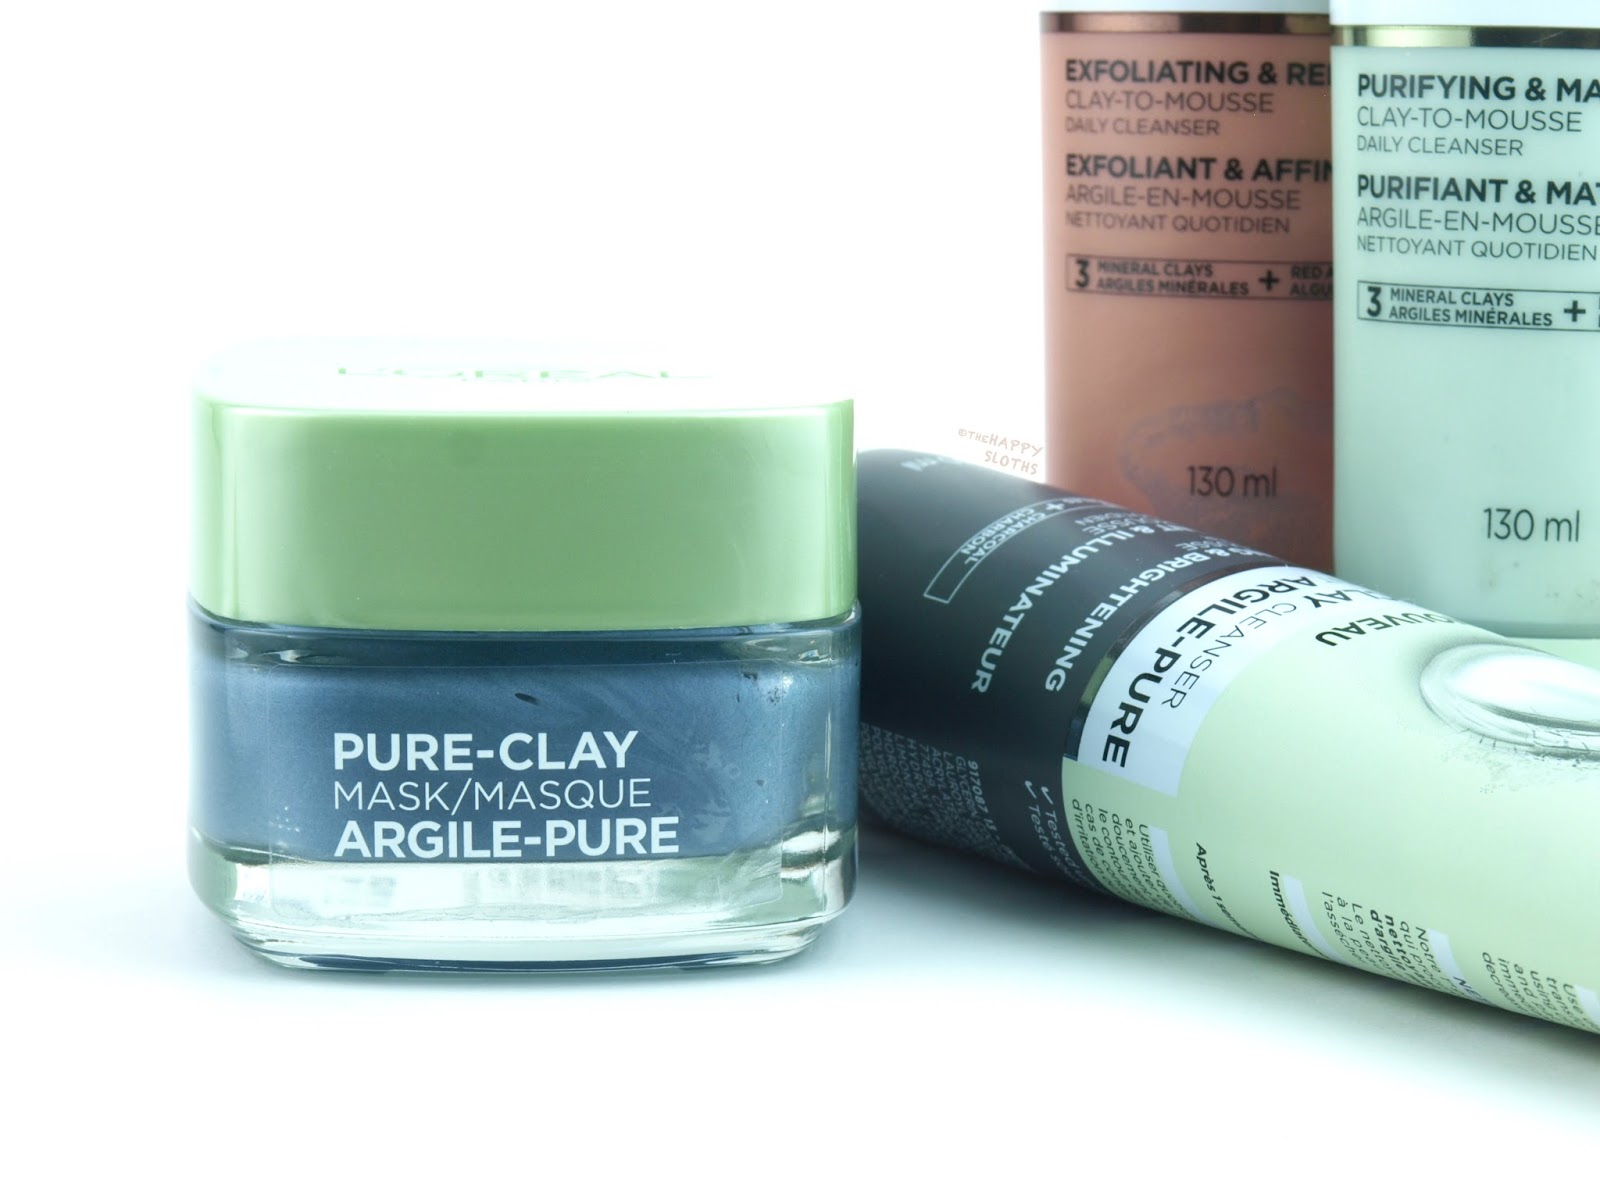 L'Oreal Pure-Clay Comforting & Unifying Mask: Review